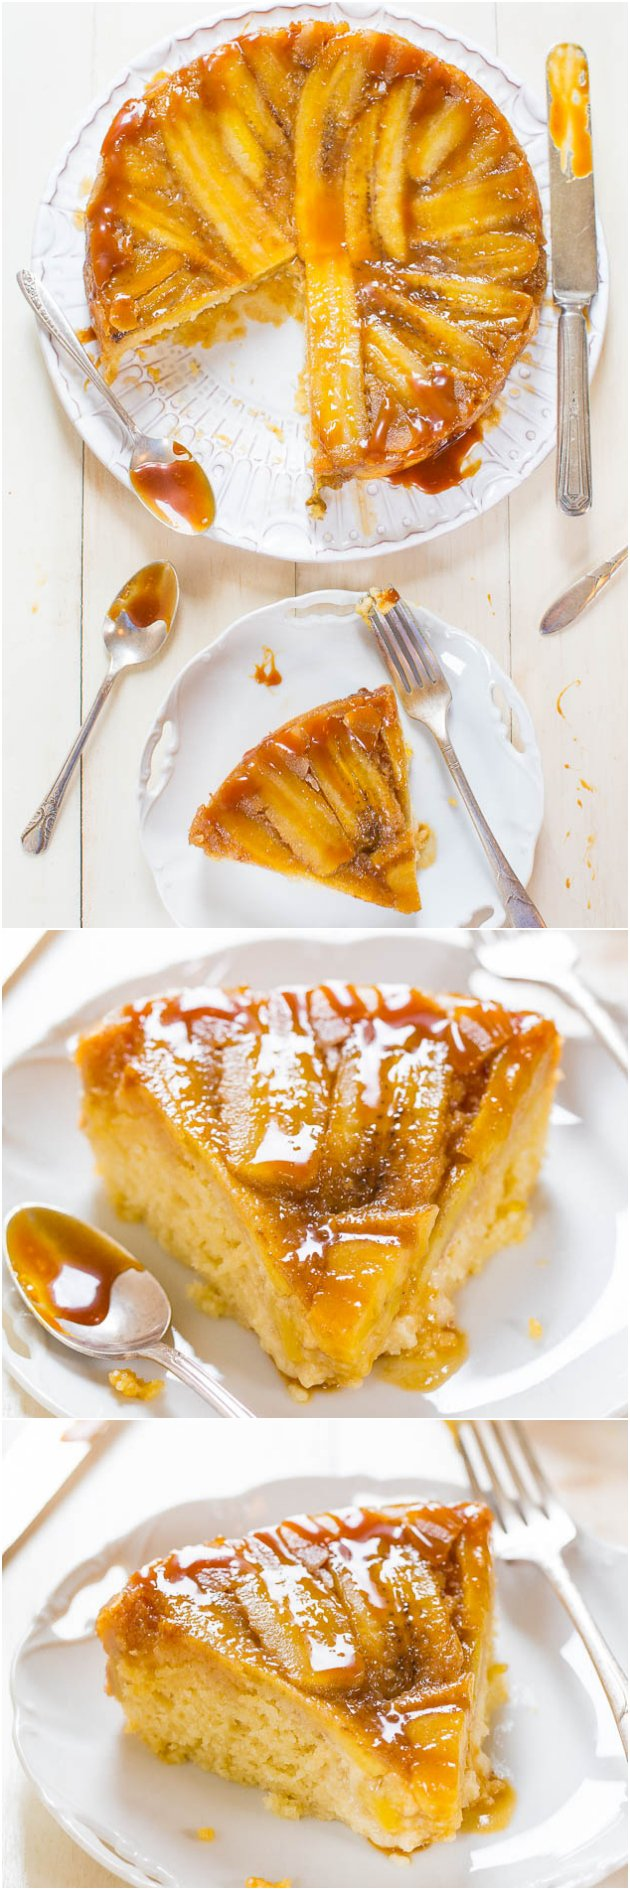 This banana upside down cake is super moist thanks to the combo of sour cream, buttermilk, and vegetable oil. That caramelized banana flavor is so good! #upsidedowncake #cakerecipe #cakes #bananacake #bananas